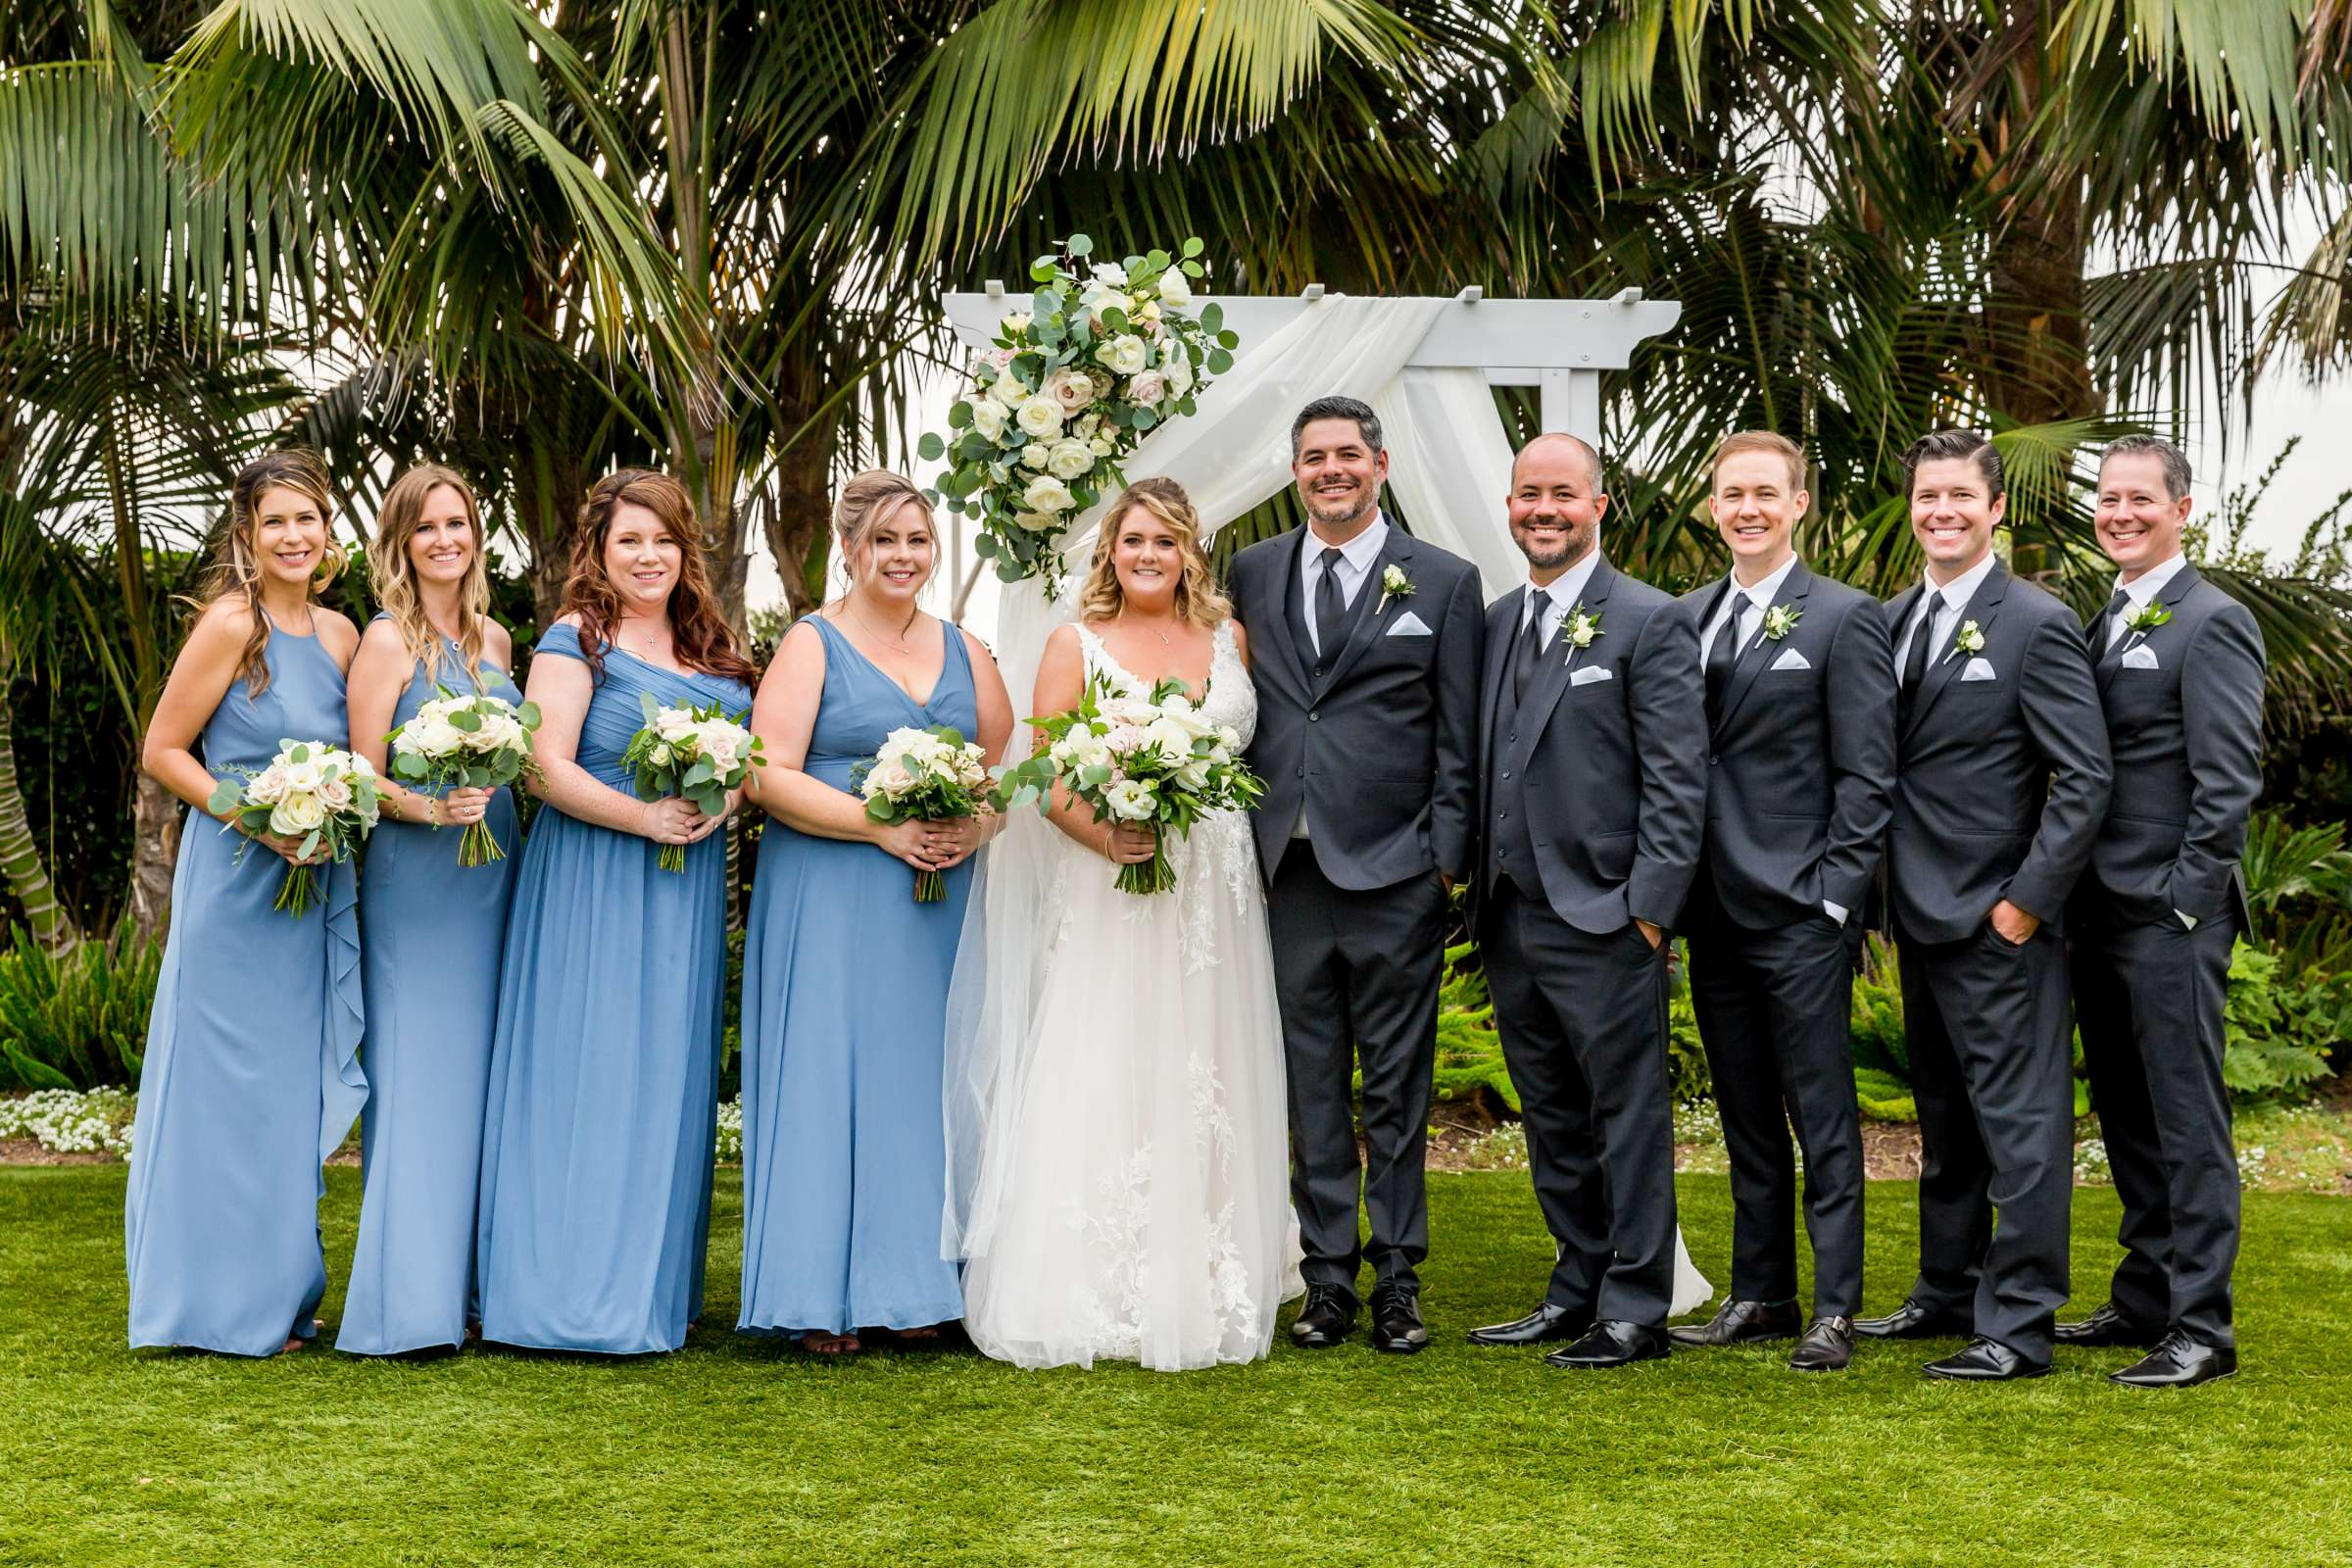 Cape Rey Carlsbad, A Hilton Resort Wedding, Michelle and Justin Wedding Photo #72 by True Photography